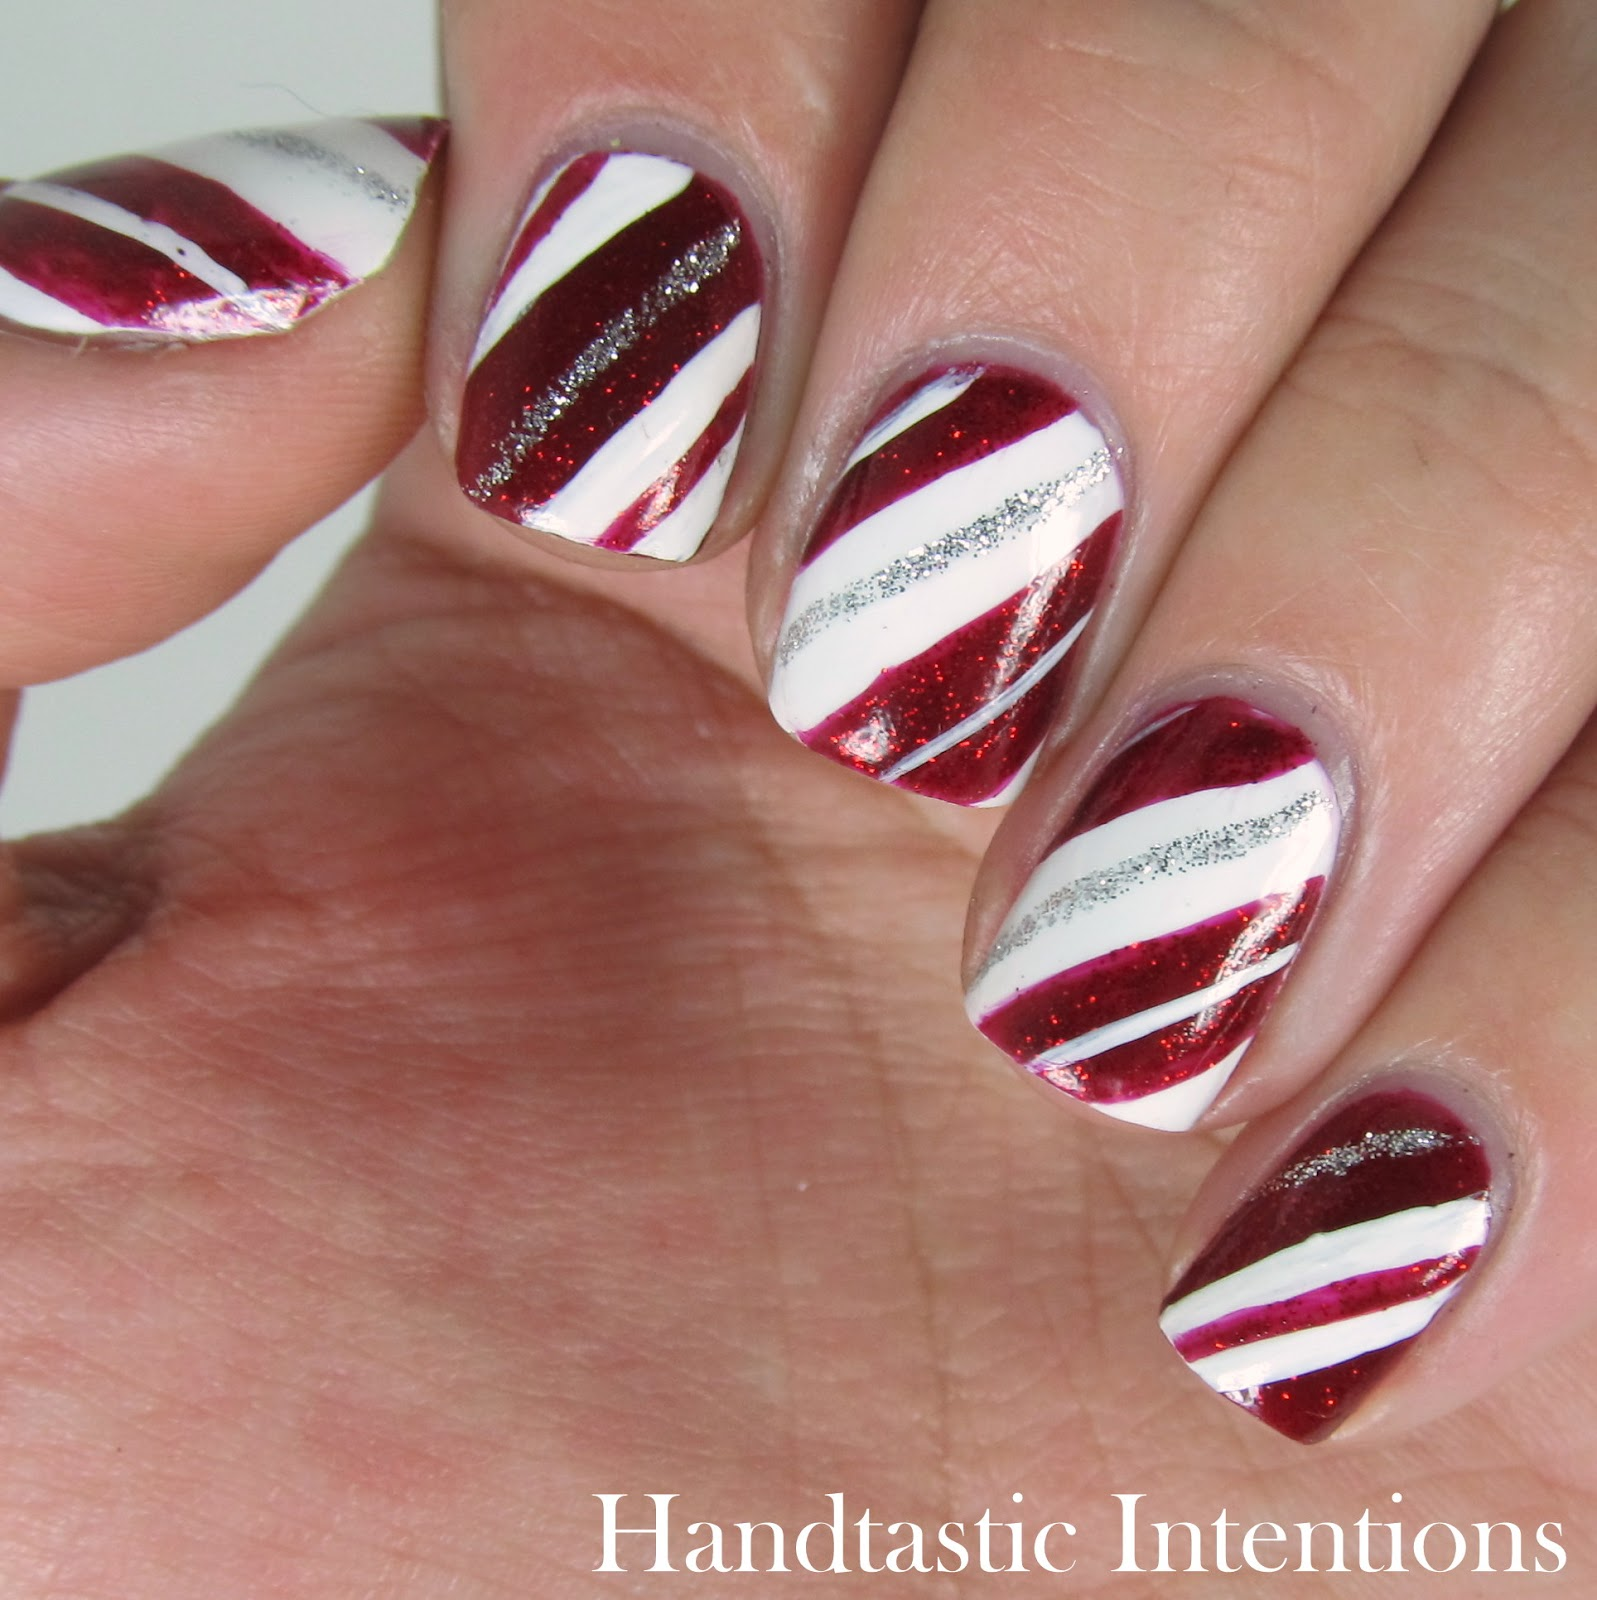 Handtastic intentions christmas nail art christmas tree candy candy cane nails prinsesfo Image collections